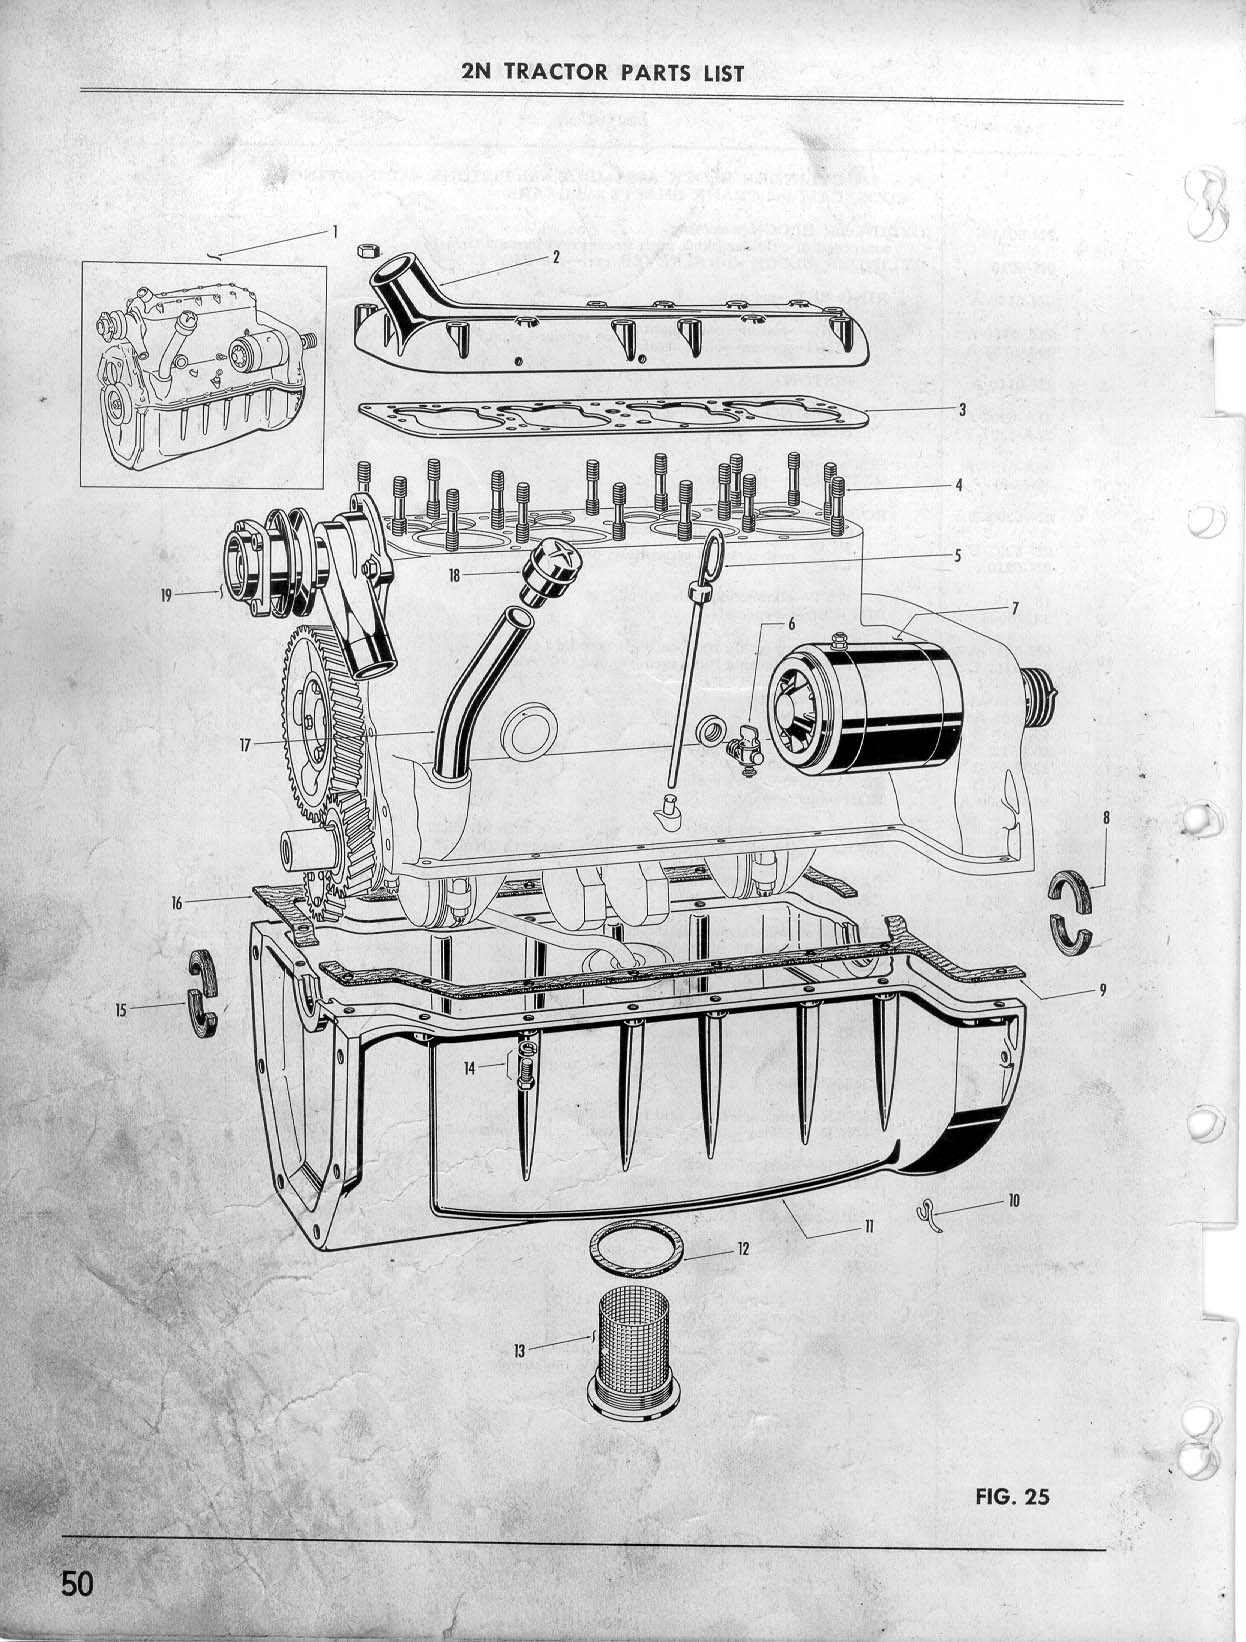 1710 Ford Tractor Parts List Wiring Harness Picture Diagram Beautiful Fascinating 4610 Part